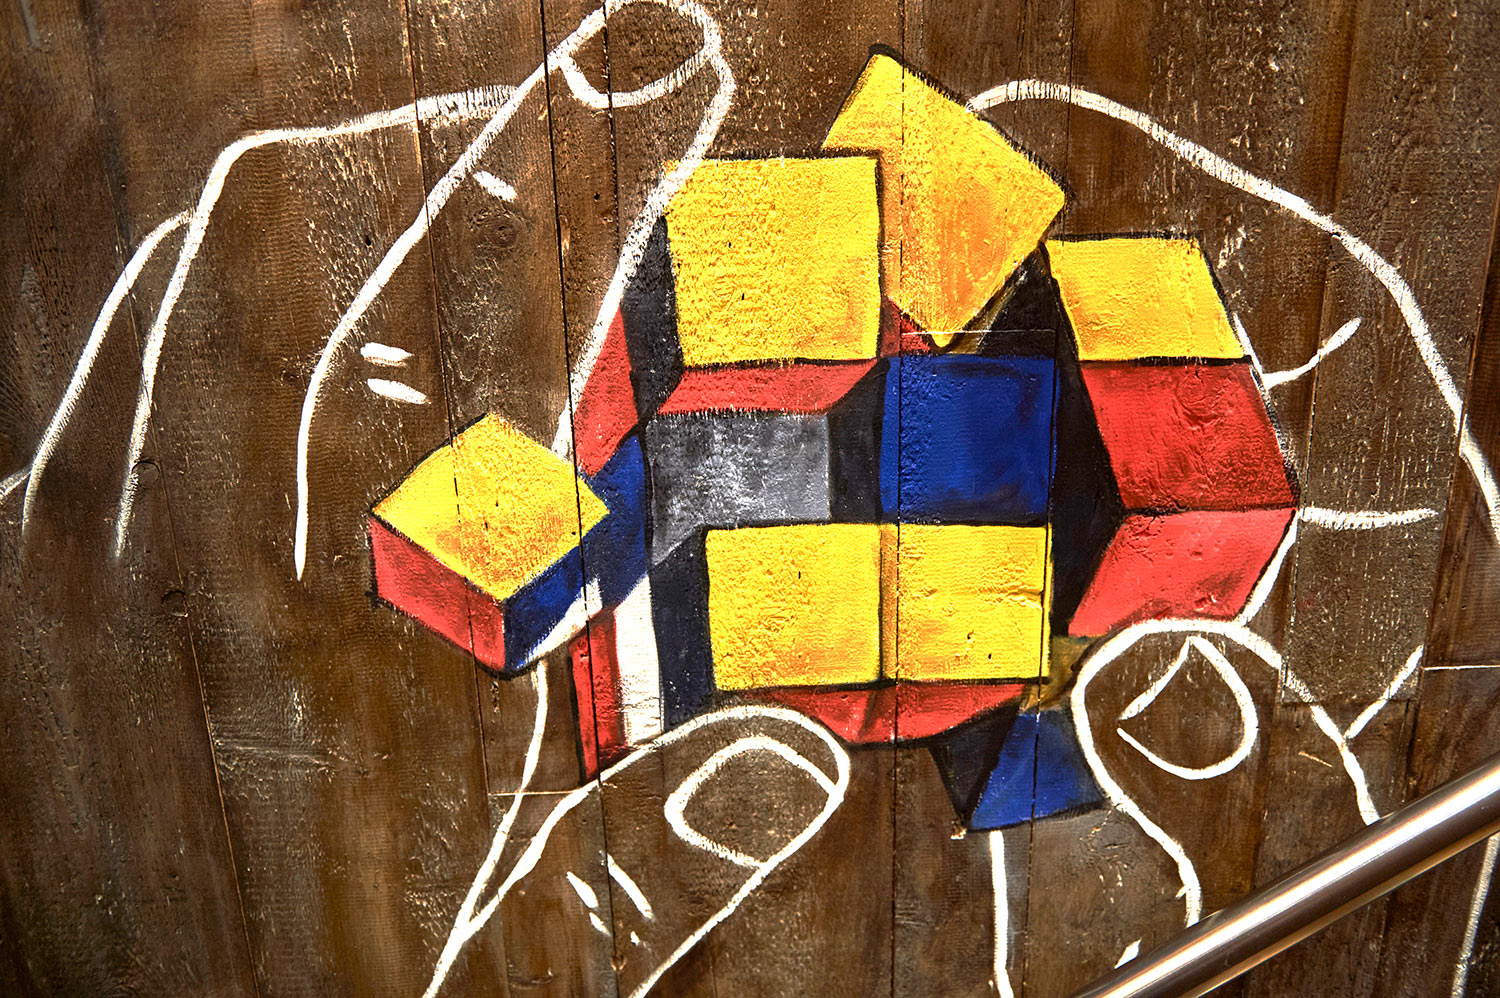 Close-up of a mural showing white outlined hands playing with a rubix cube on a wooden background, in MOD Pizza, Leicester by SAINT Design.